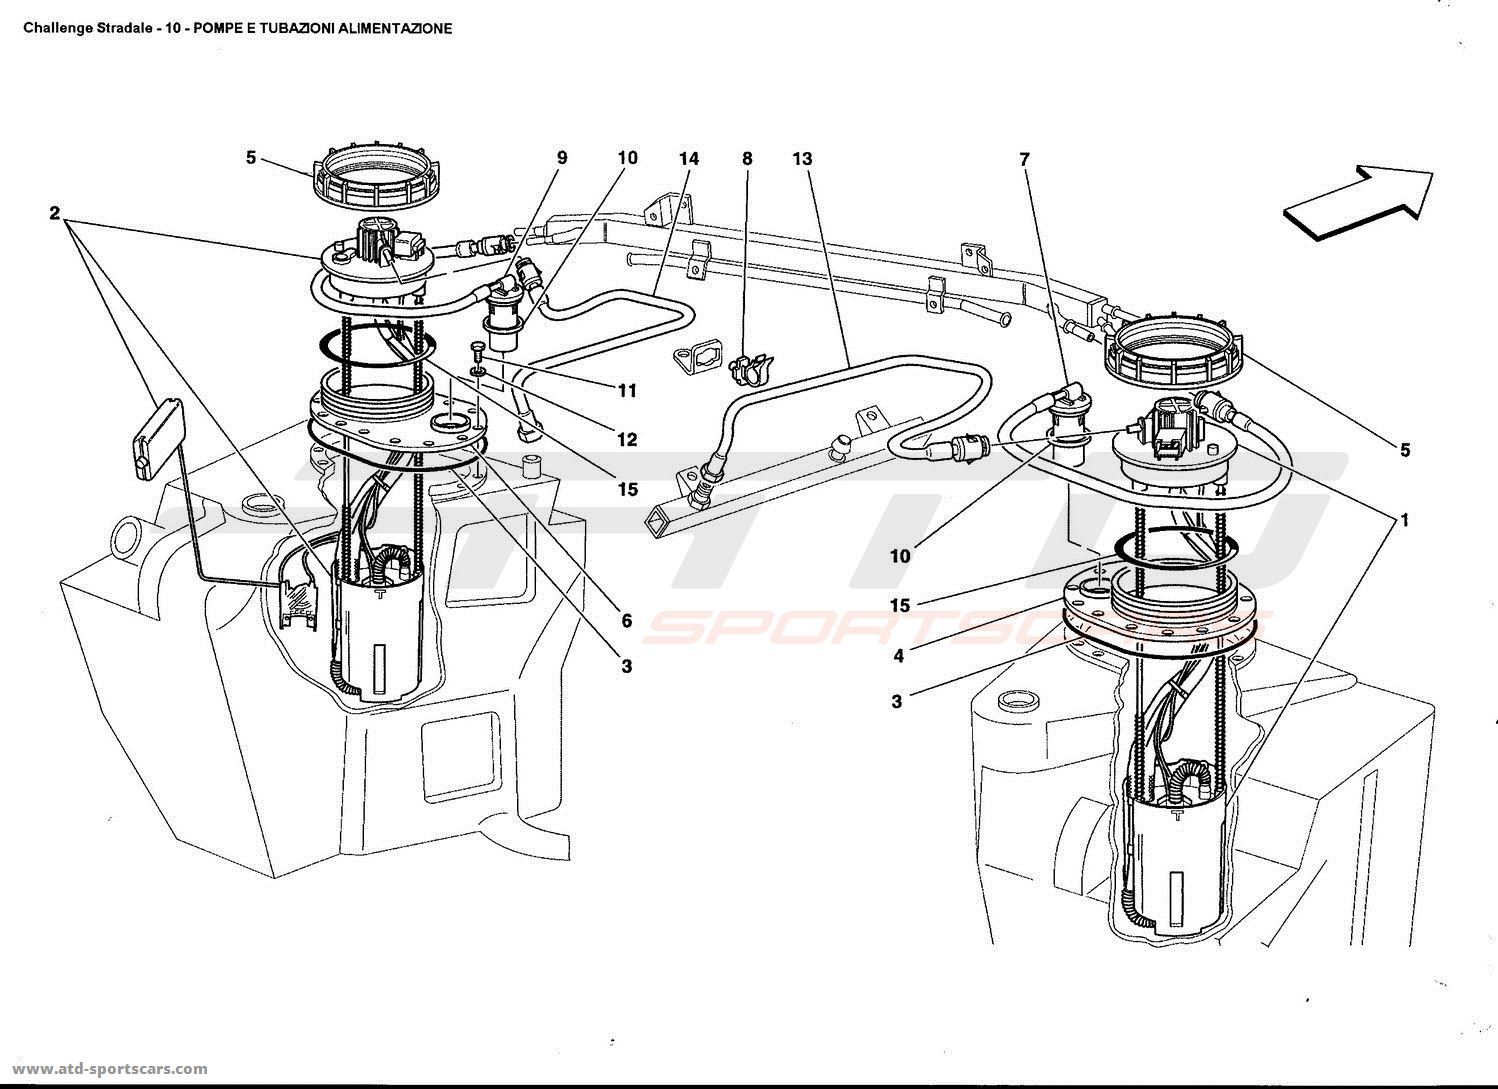 Ferrari 360 Challenge Stradale Air Intake Fuel Parts At Atd Wiring Diagrams Pumps And Pipes